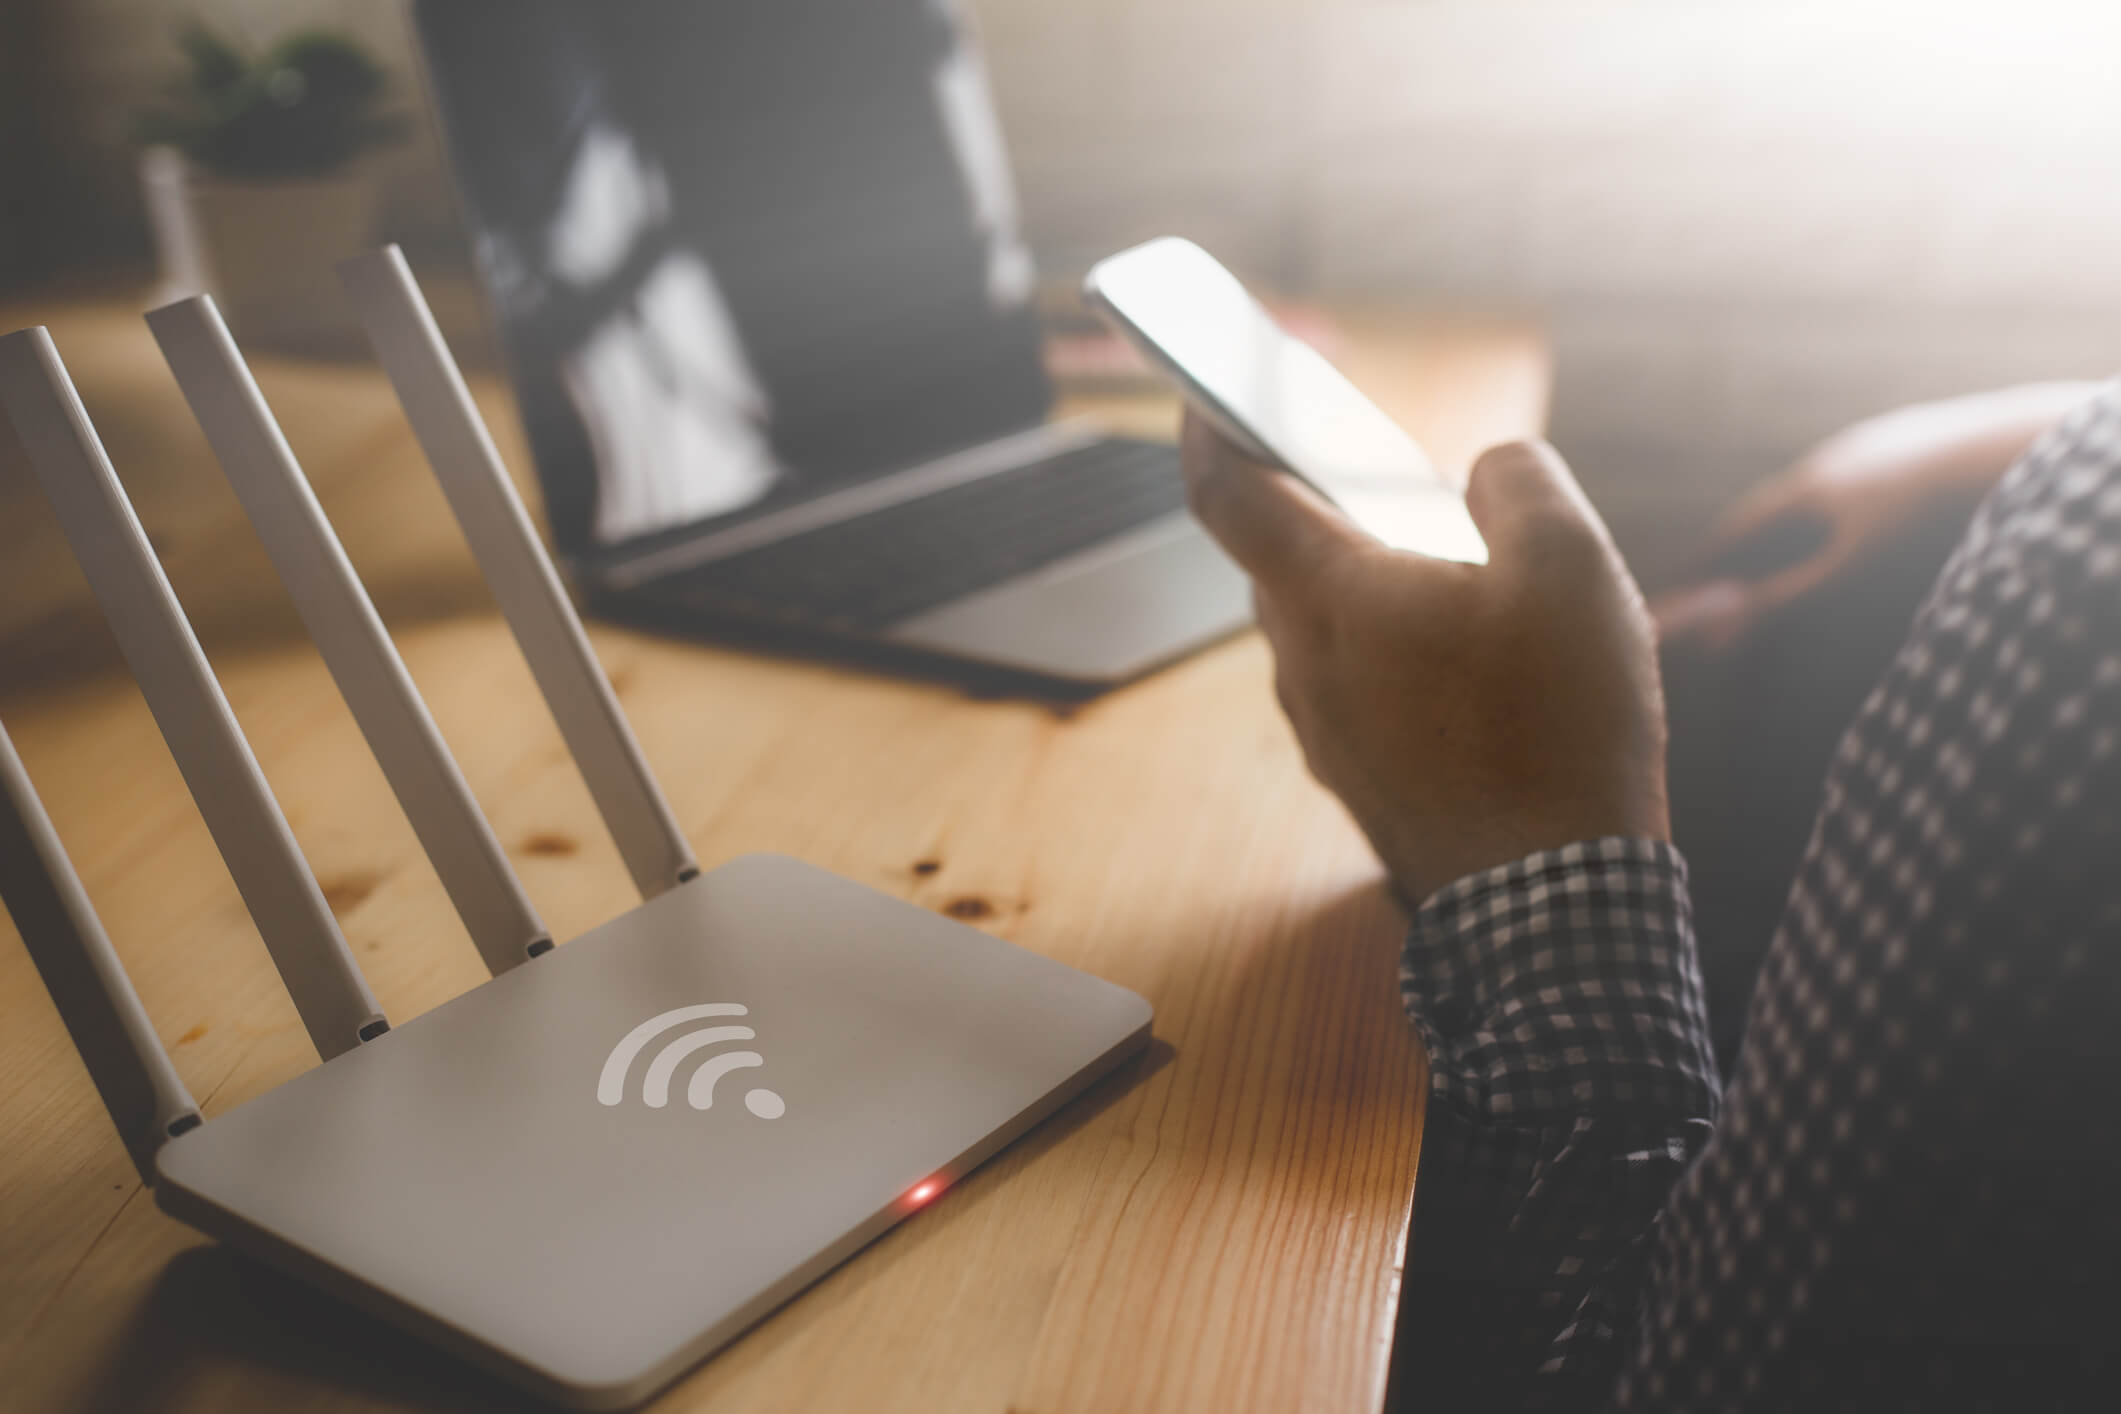 A router and a laptop sit on a desk. A hand is hold a cellphone, but the rest of the person is off frame